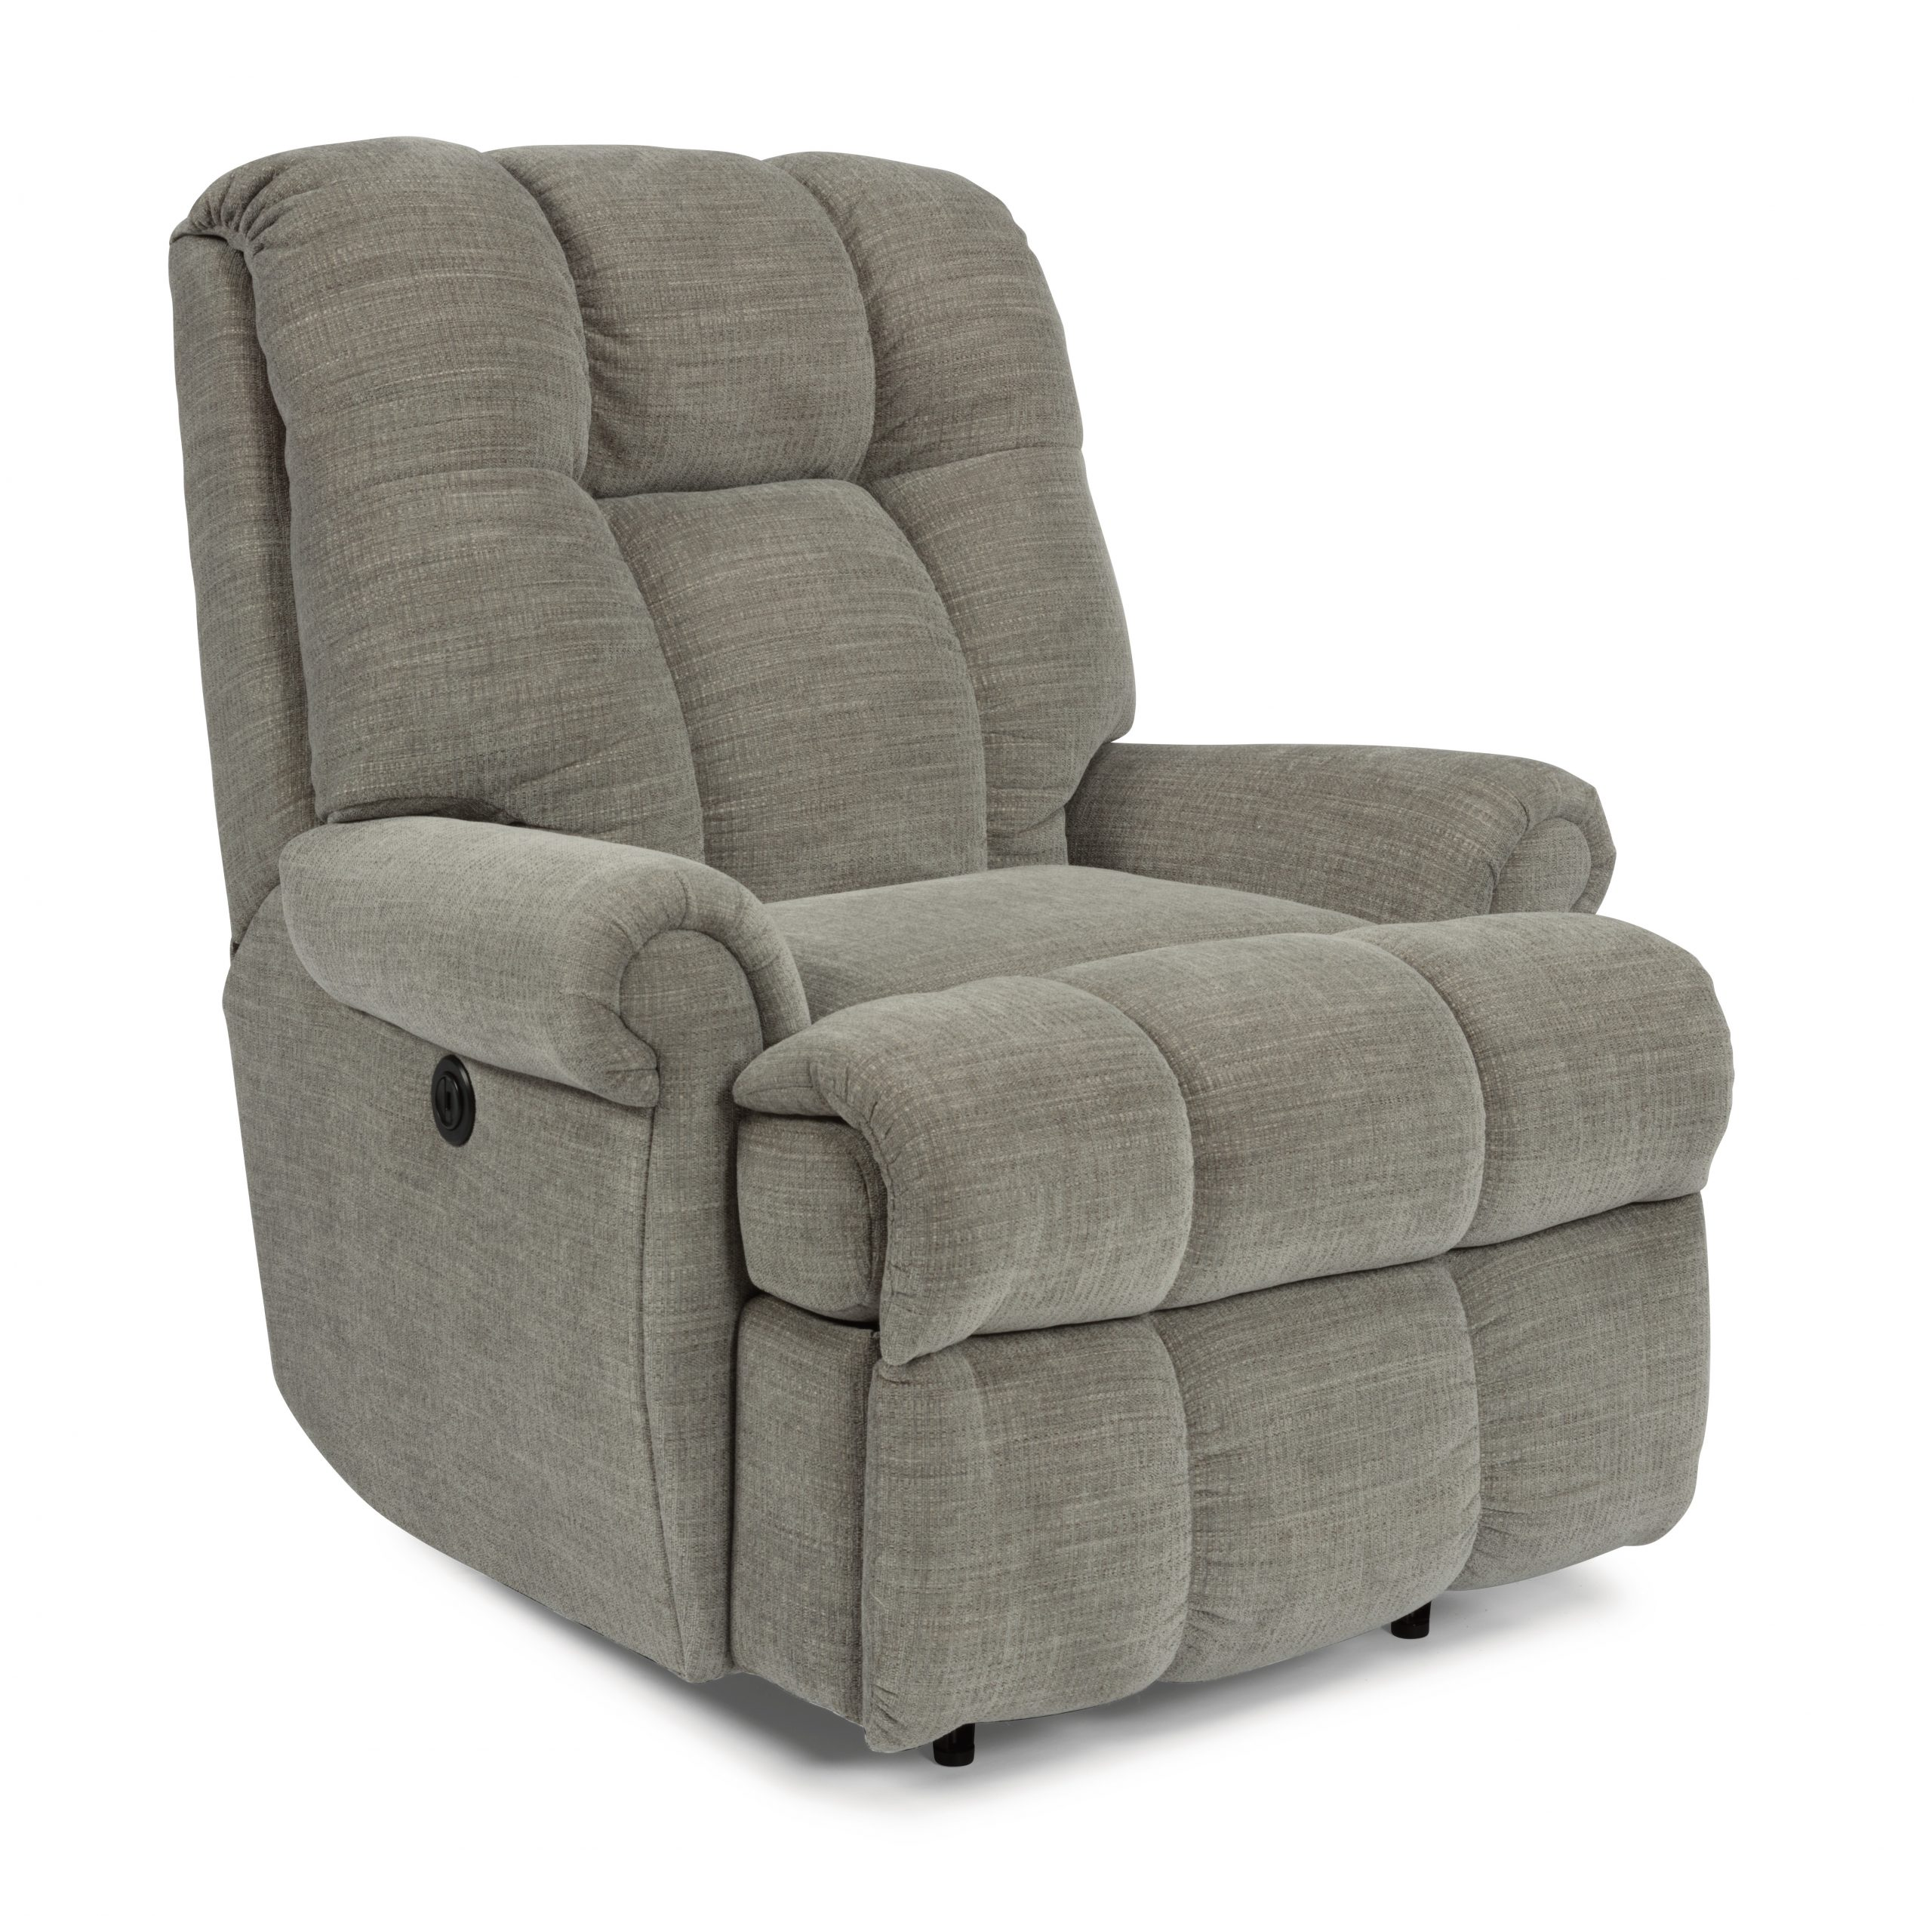 Best Recliner for Big and Tall People